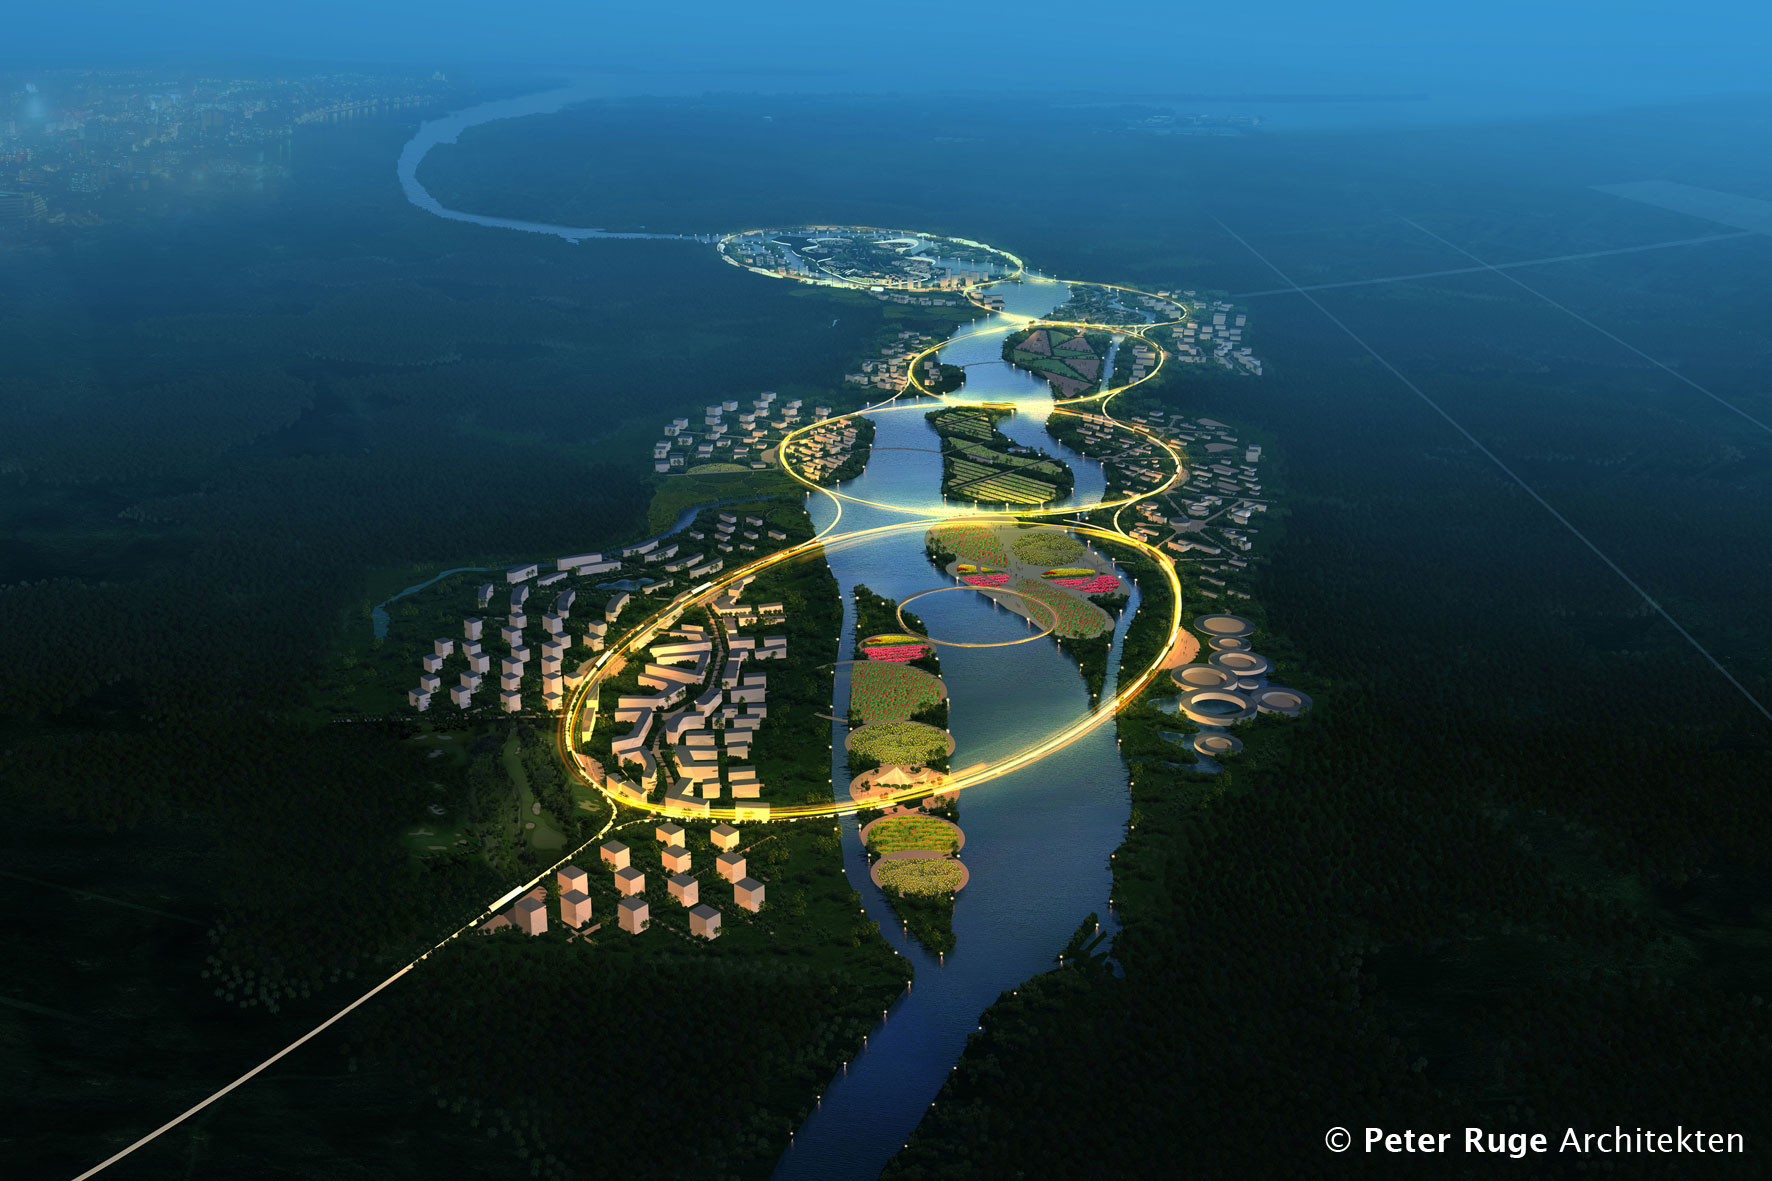 Green Health City Proposal / Peter Ruge Architekten, Courtesy of Peter Ruge Architekten